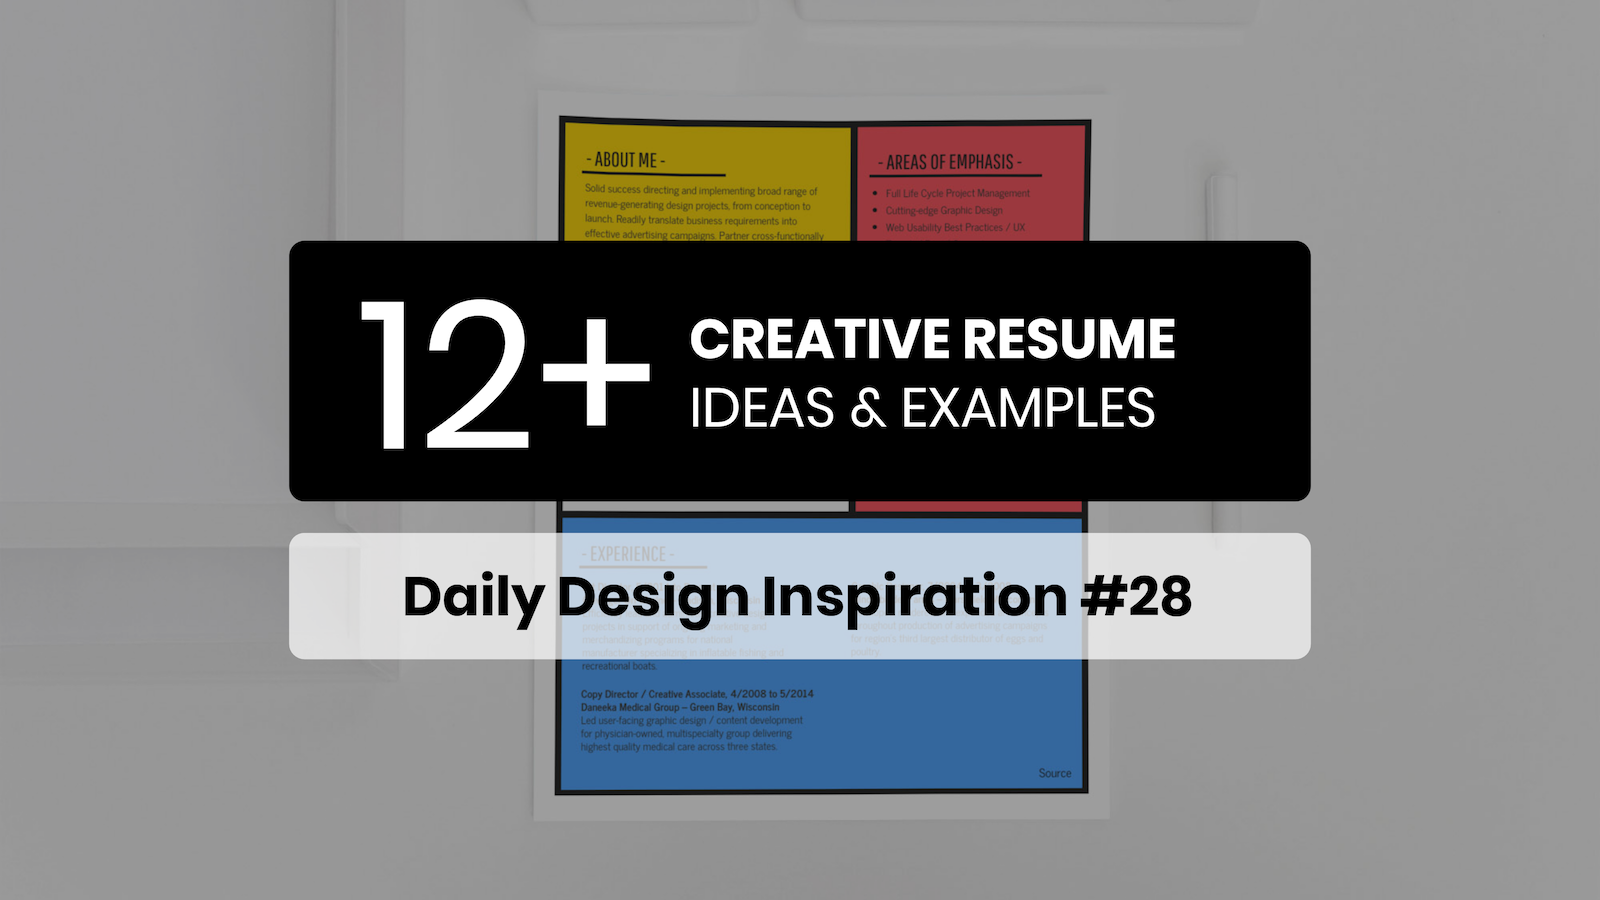 12+ Creative Resume Examples, Templates & Ideas – Daily Design Inspiration #28